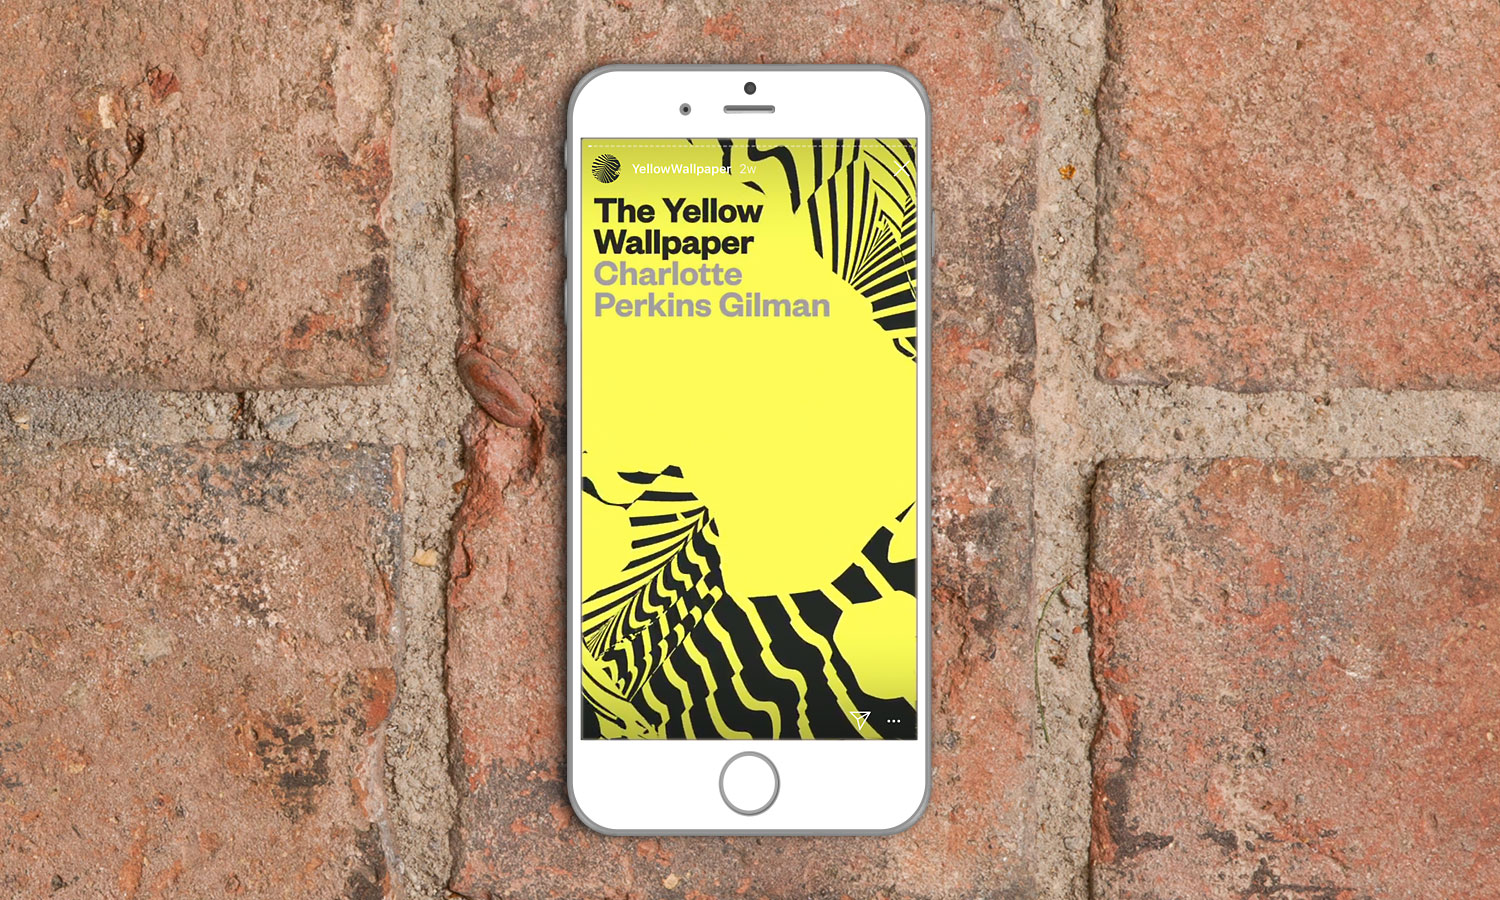 NYPL-insta-novels-the-yellow-wallpaper-wagner1972.jpg